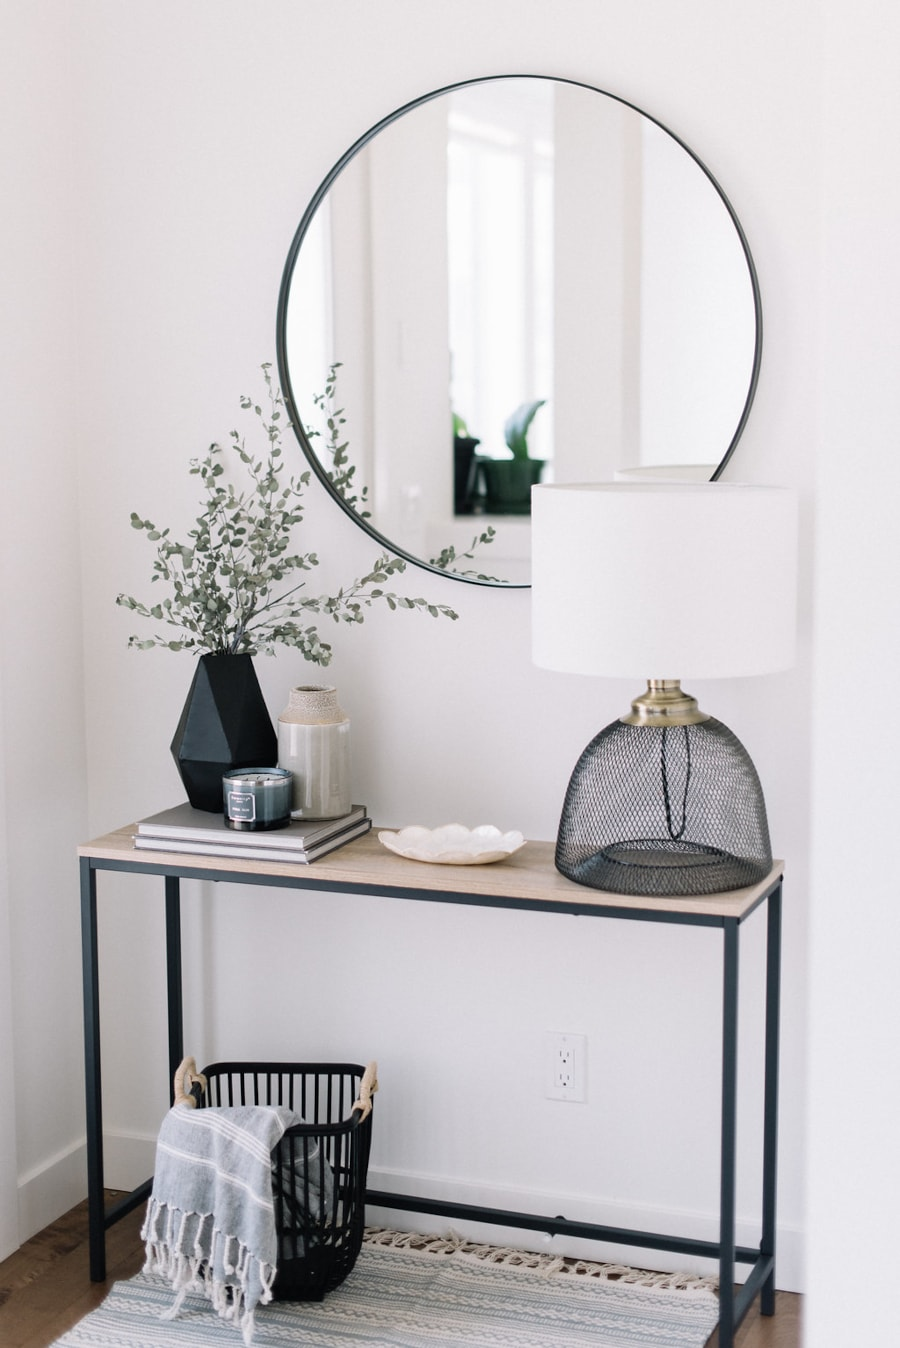 A modern front entryway using black accents on a slim table. Black framed circular mirror hangs above the table.